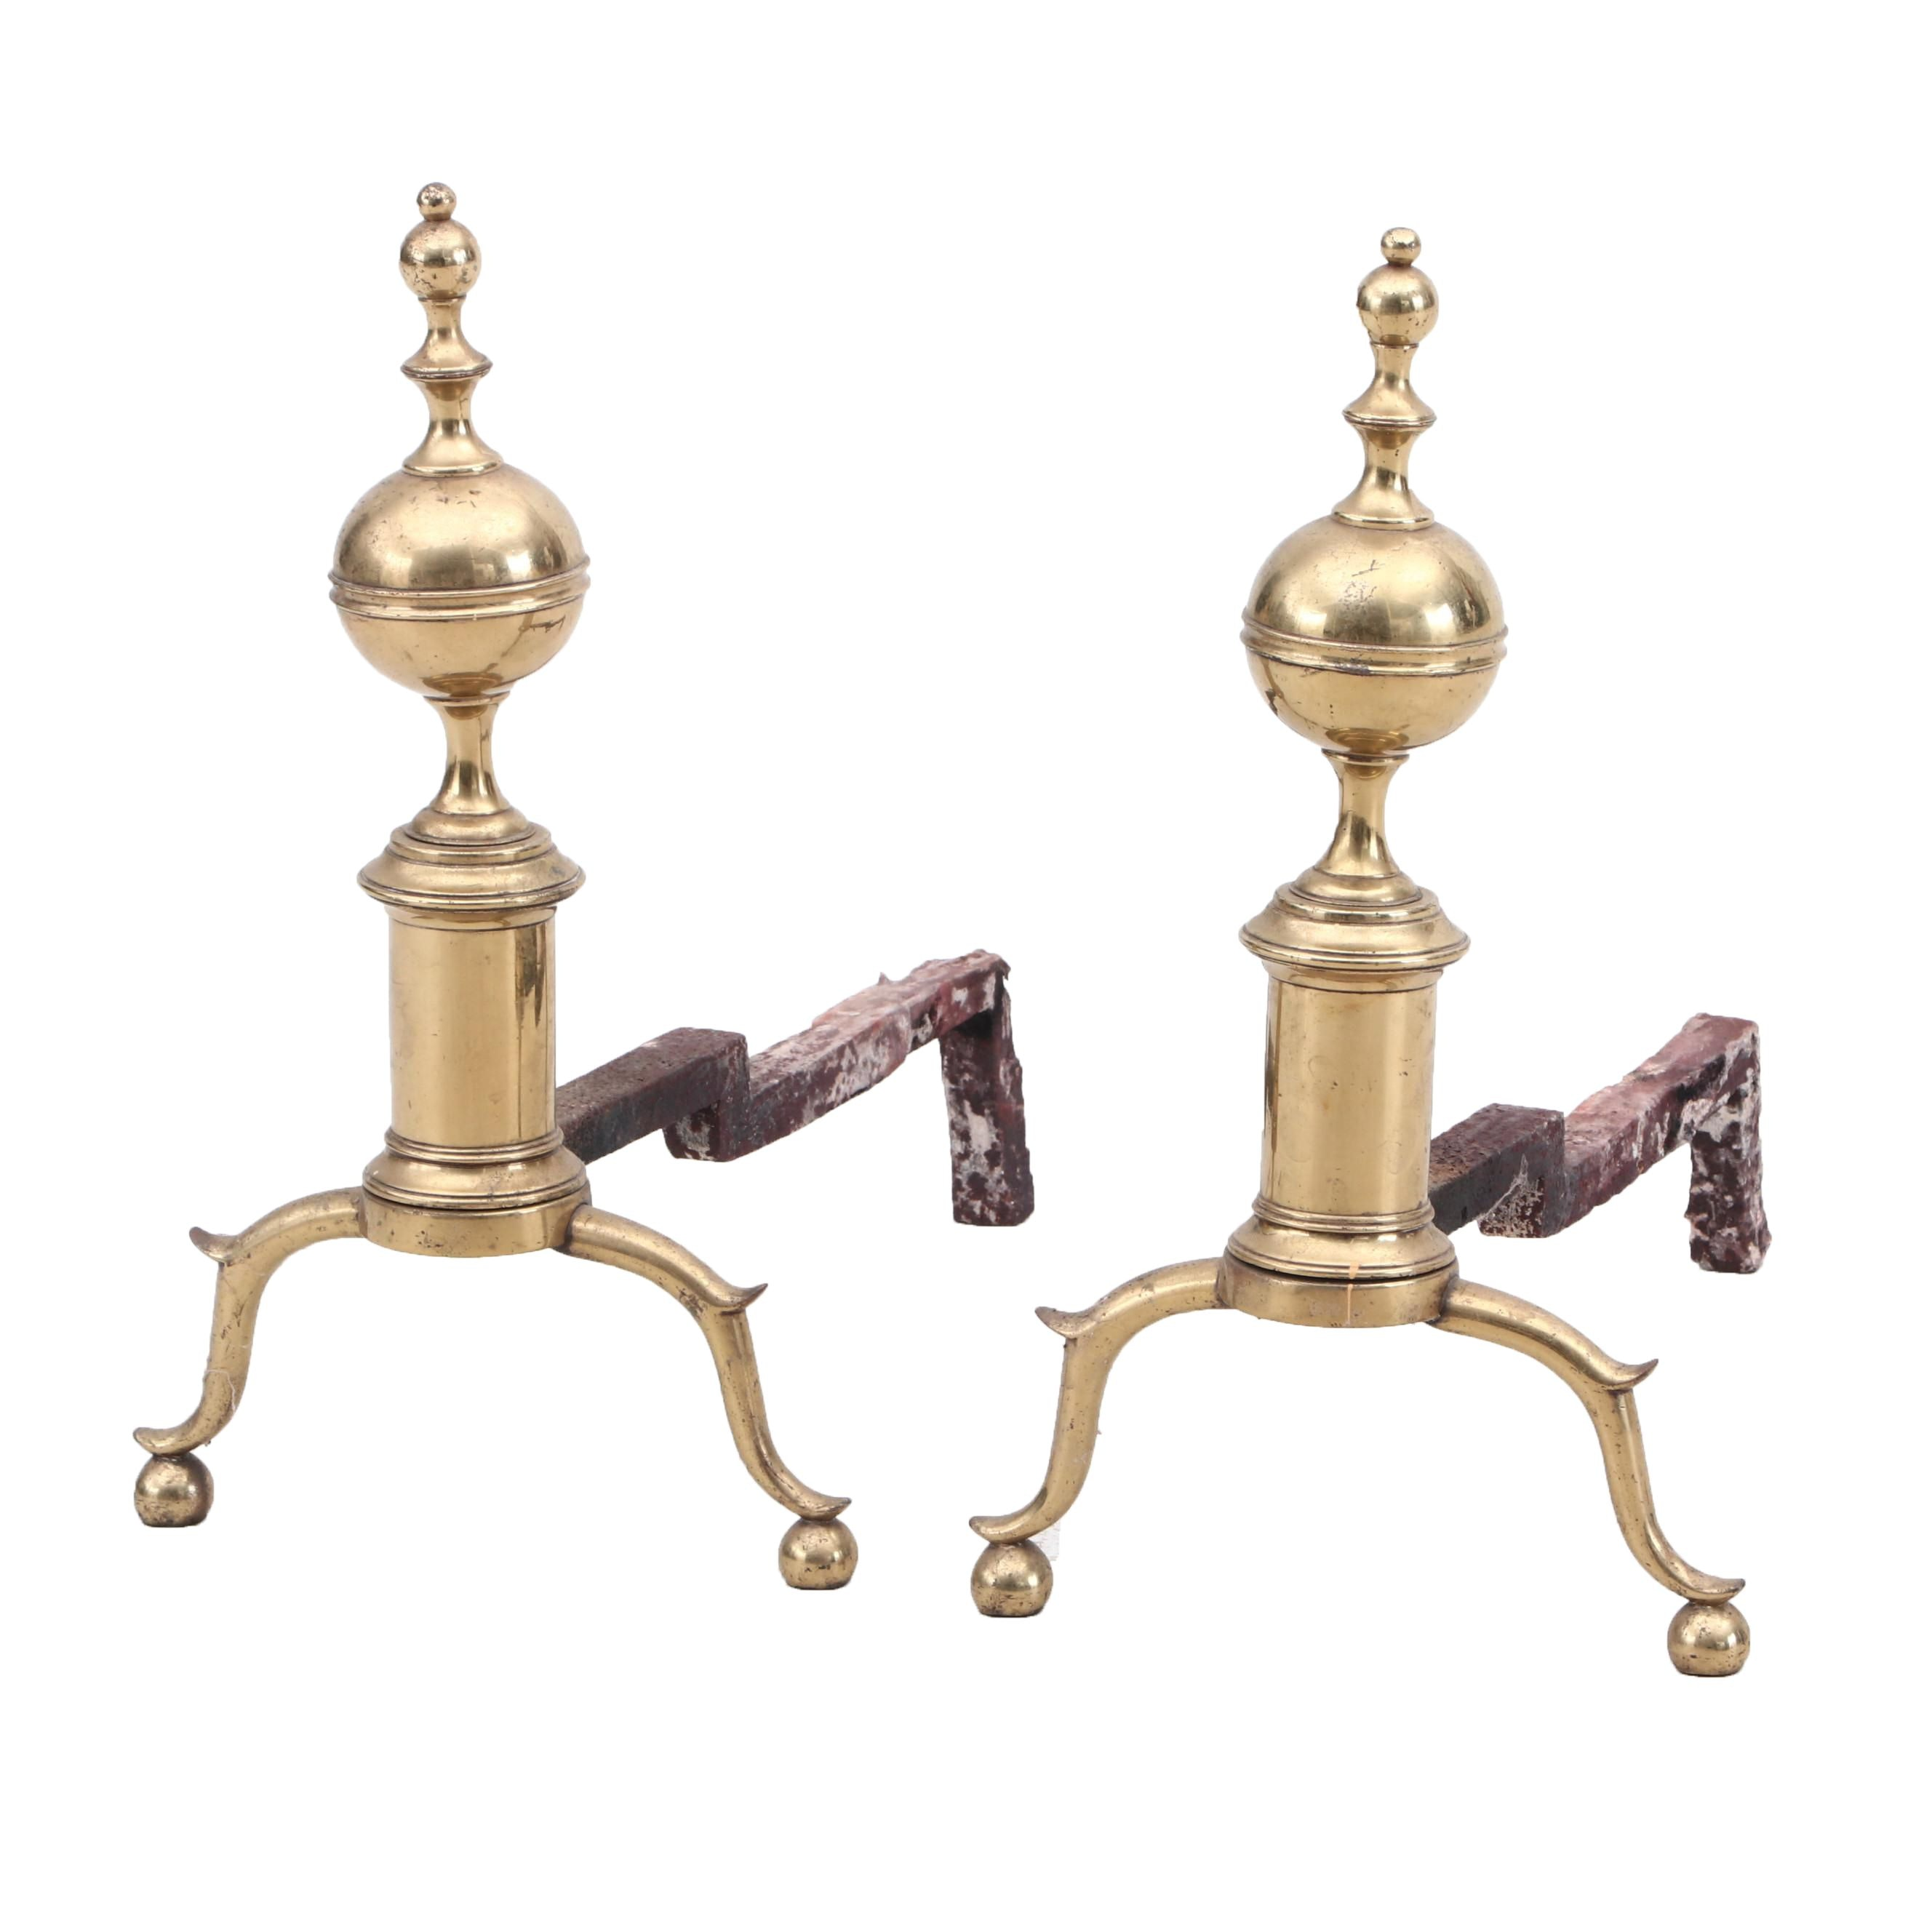 Federal Style Ball Top Fireplace Andirons with Spurred Legs